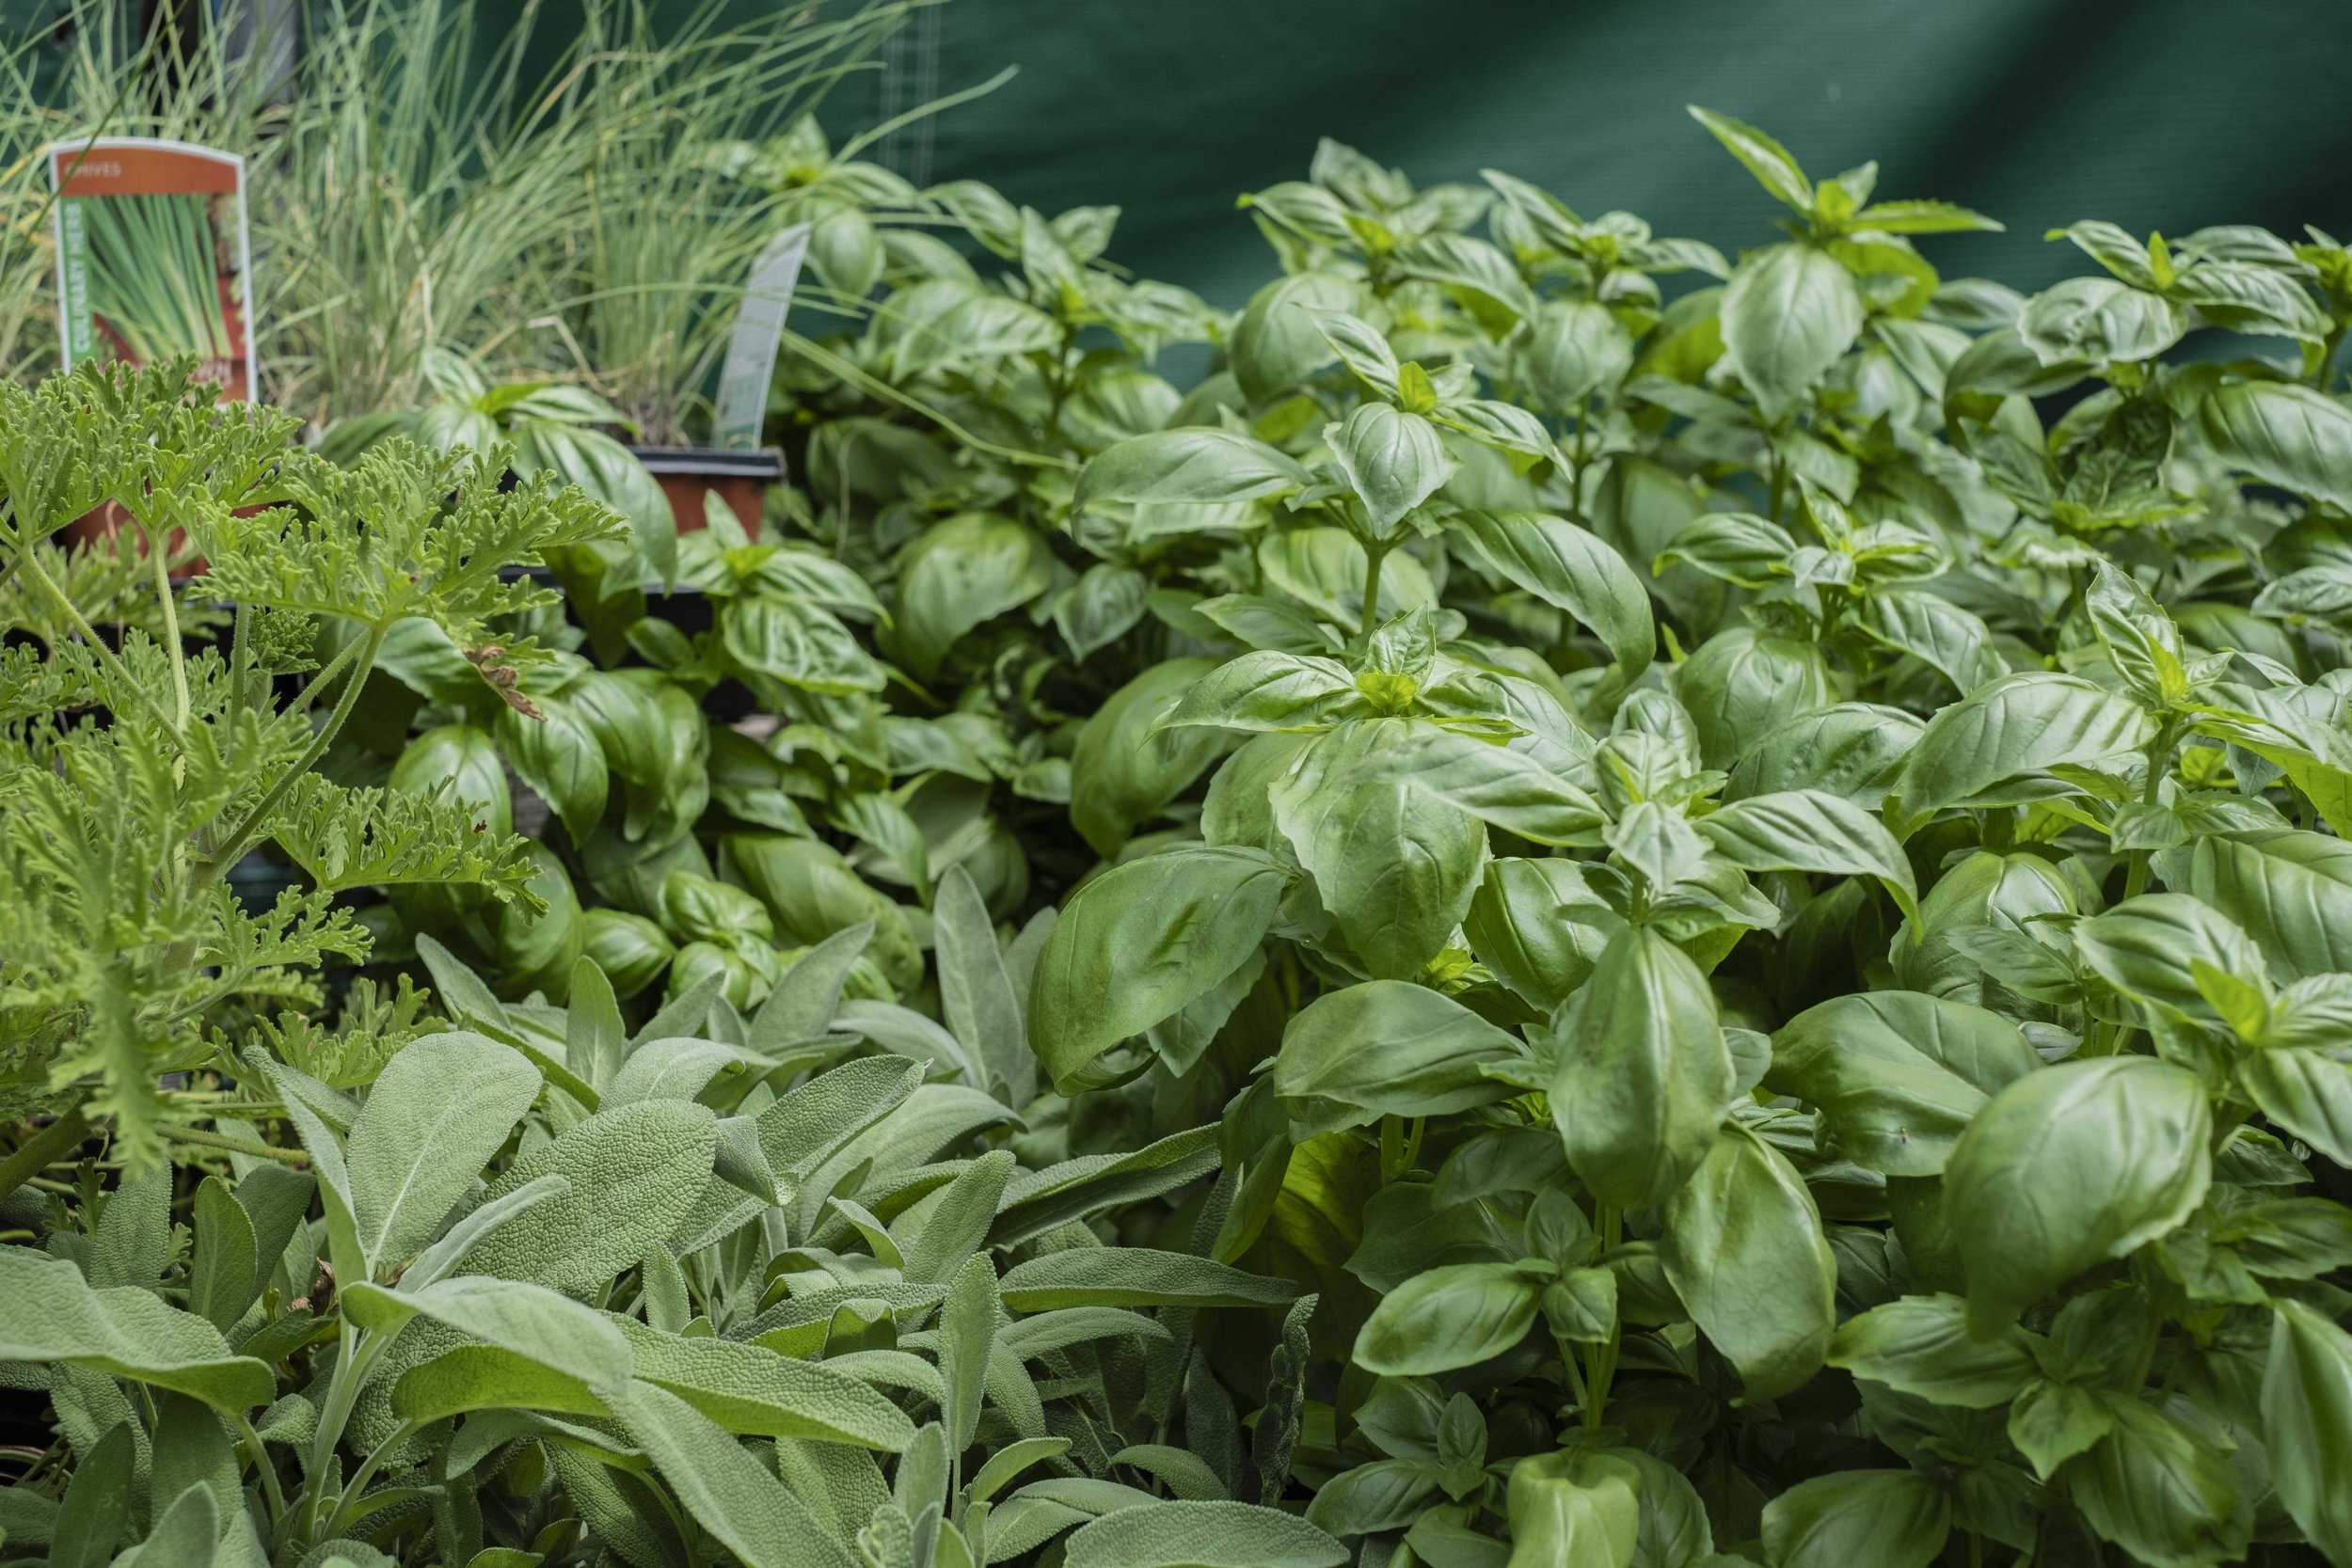 I have a long love of texture in photography. Seas of basil.